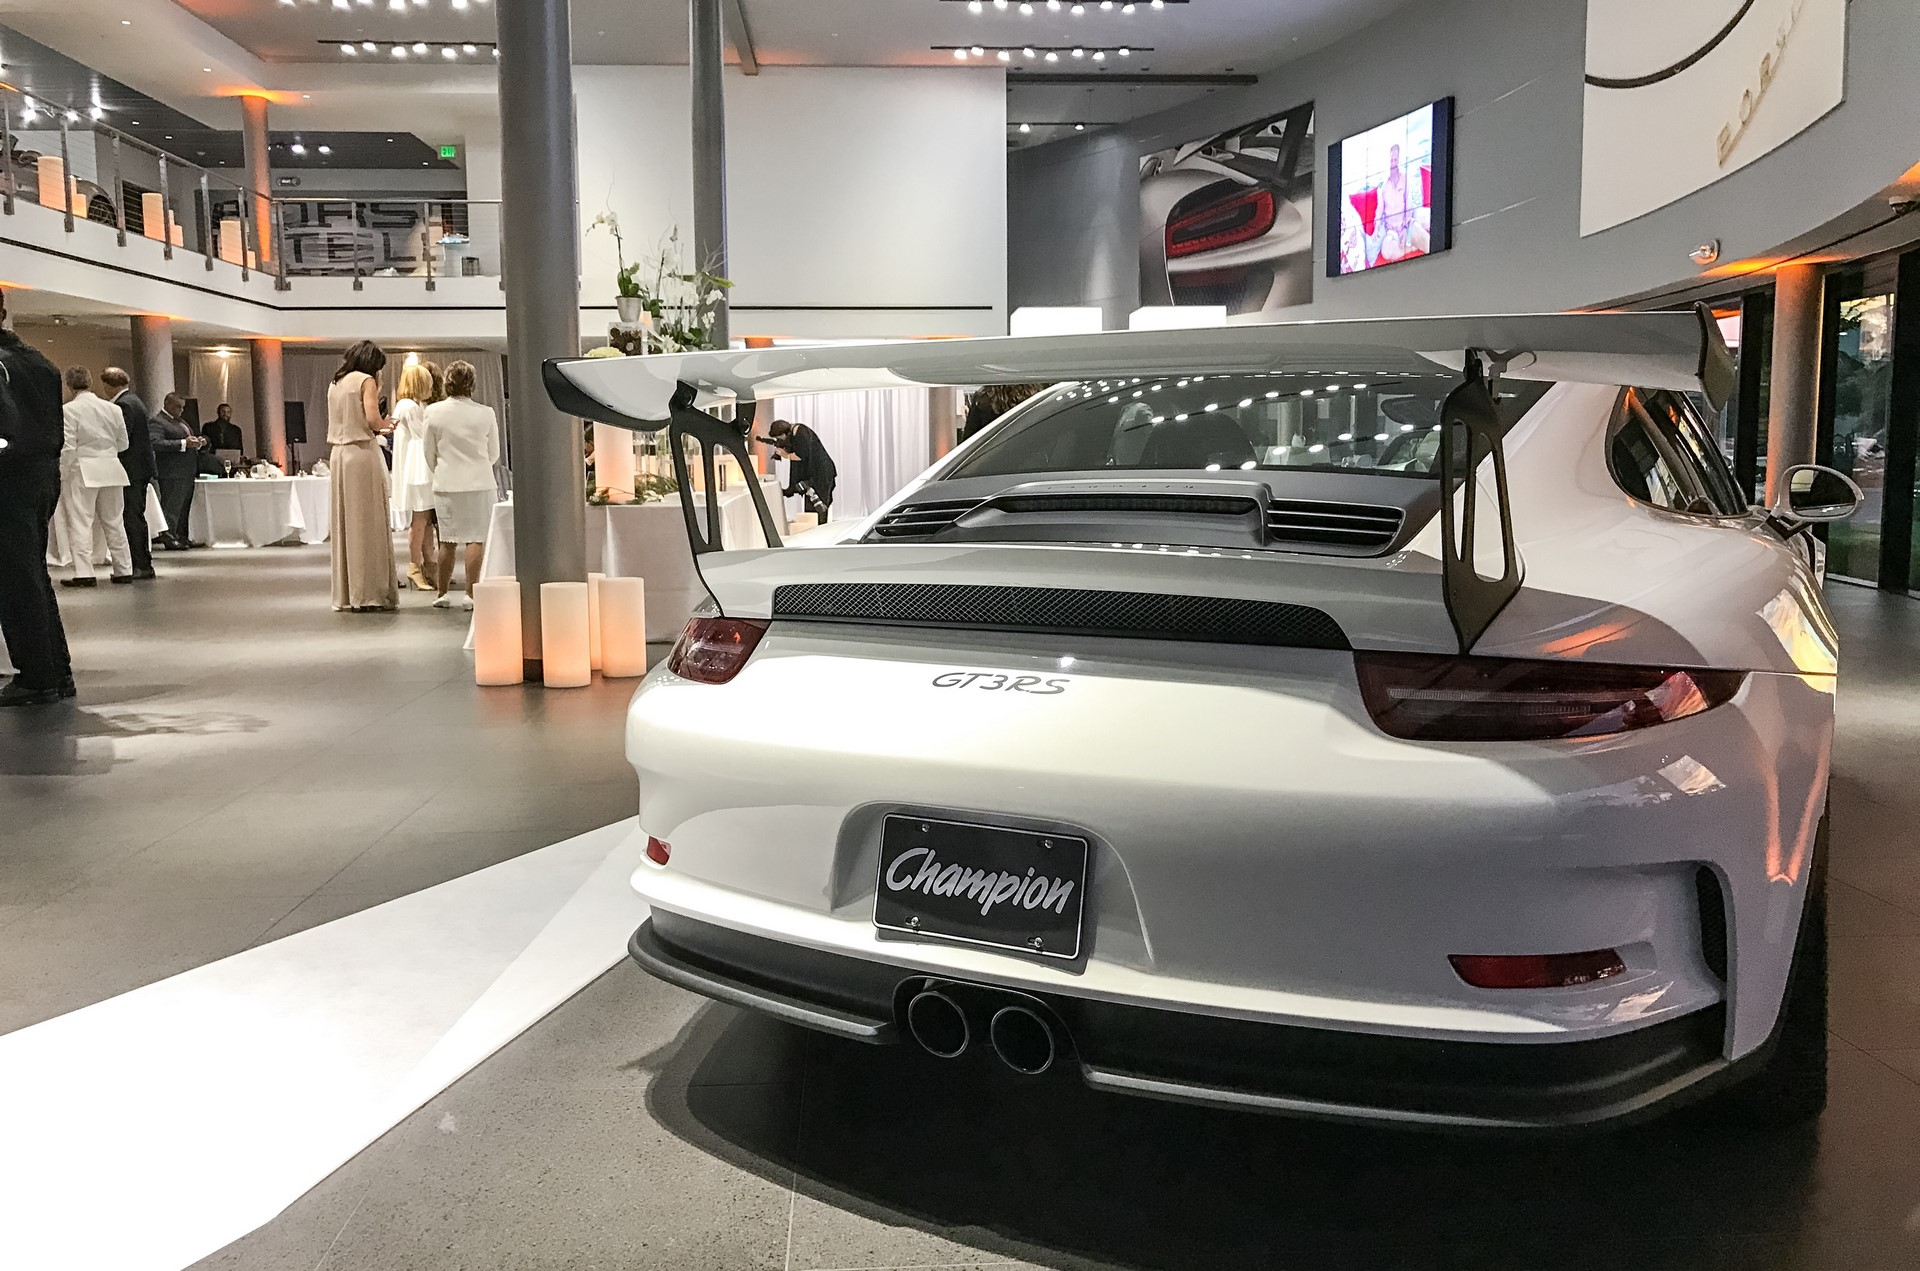 Champion Porsche wedding (6)